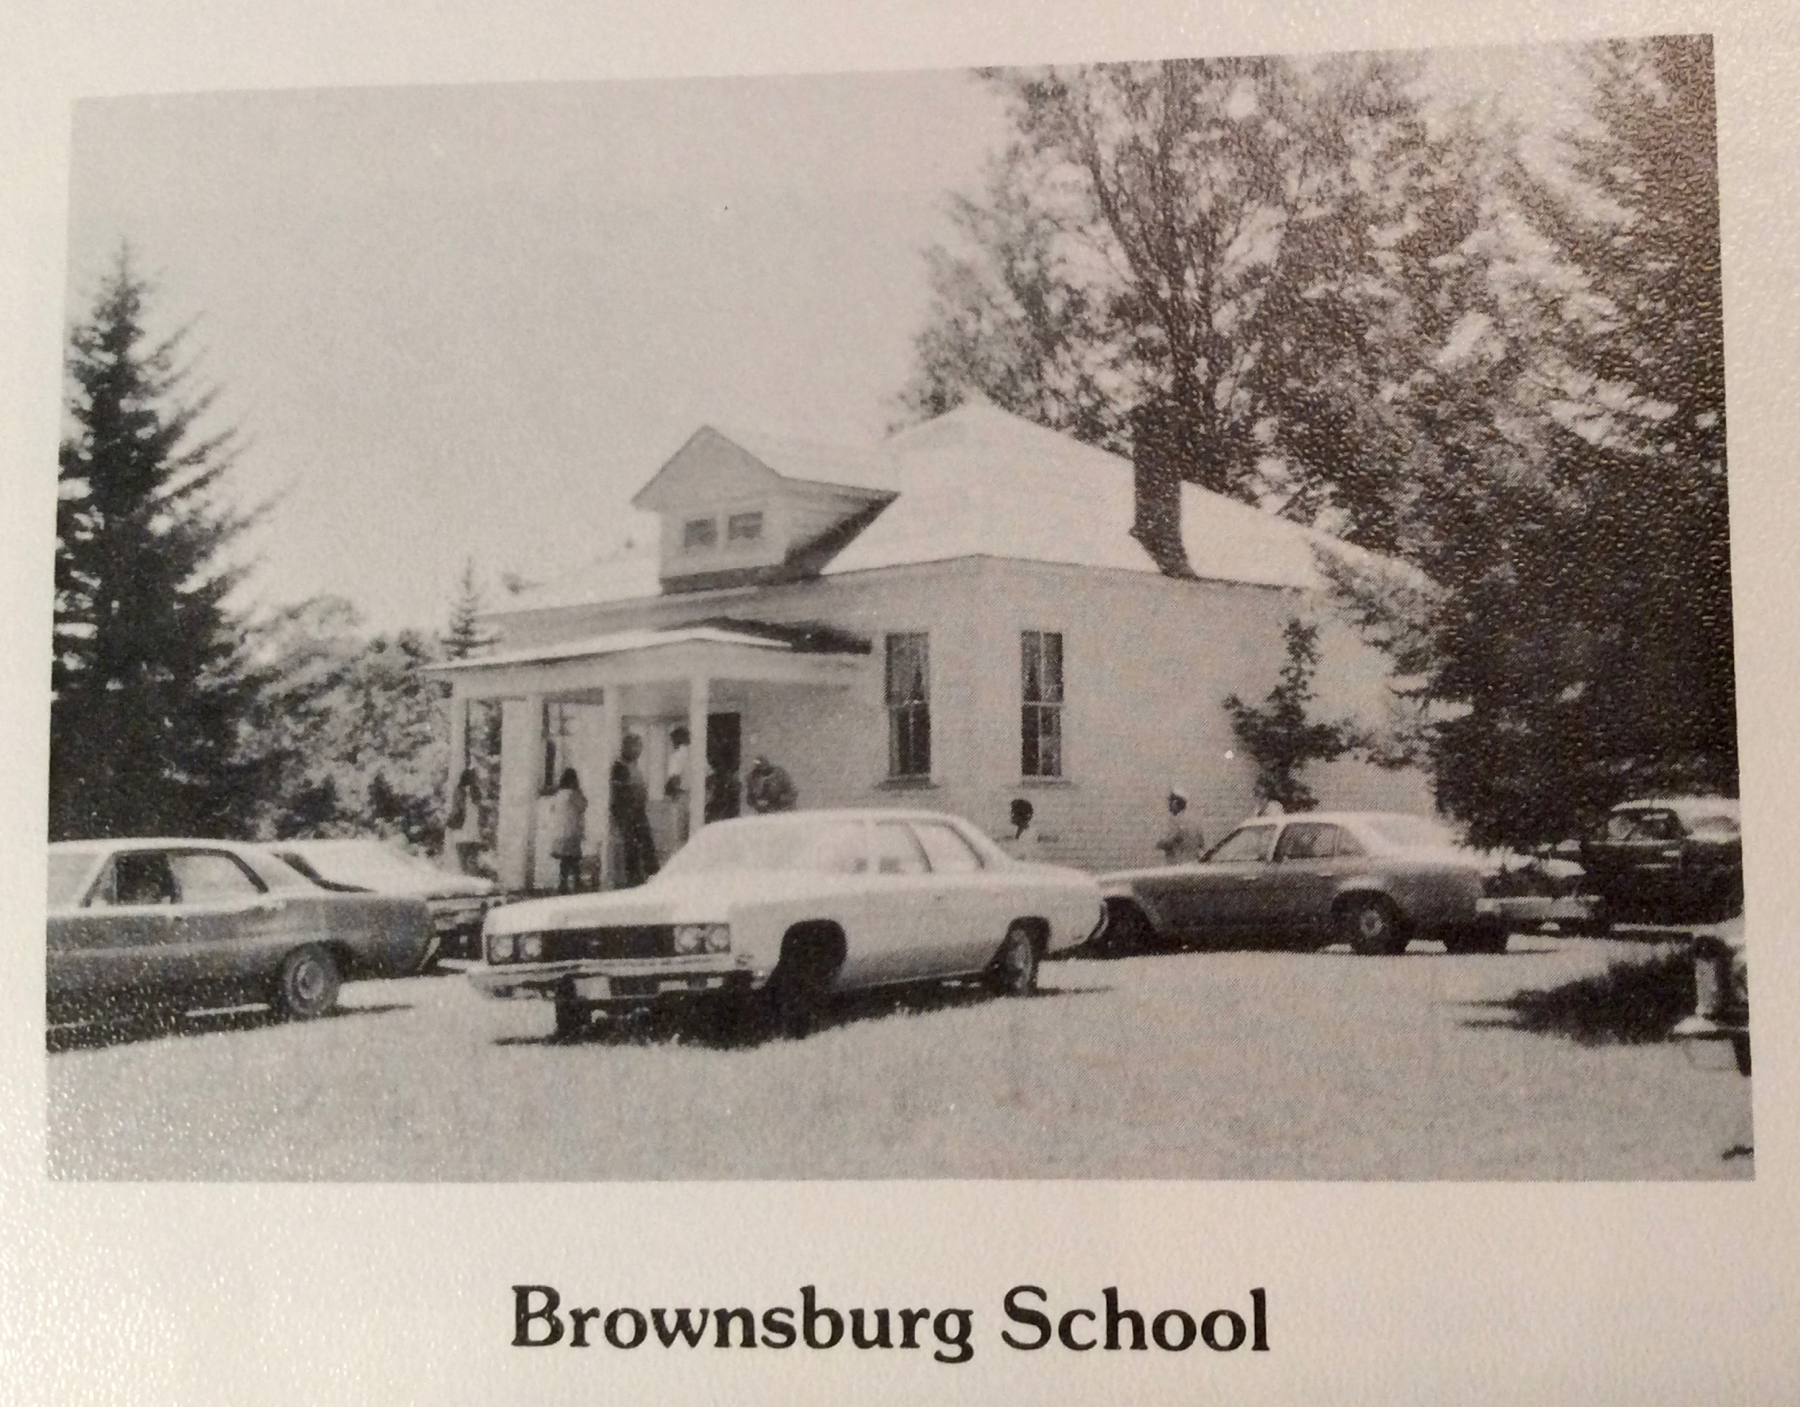 The Brownsburg School